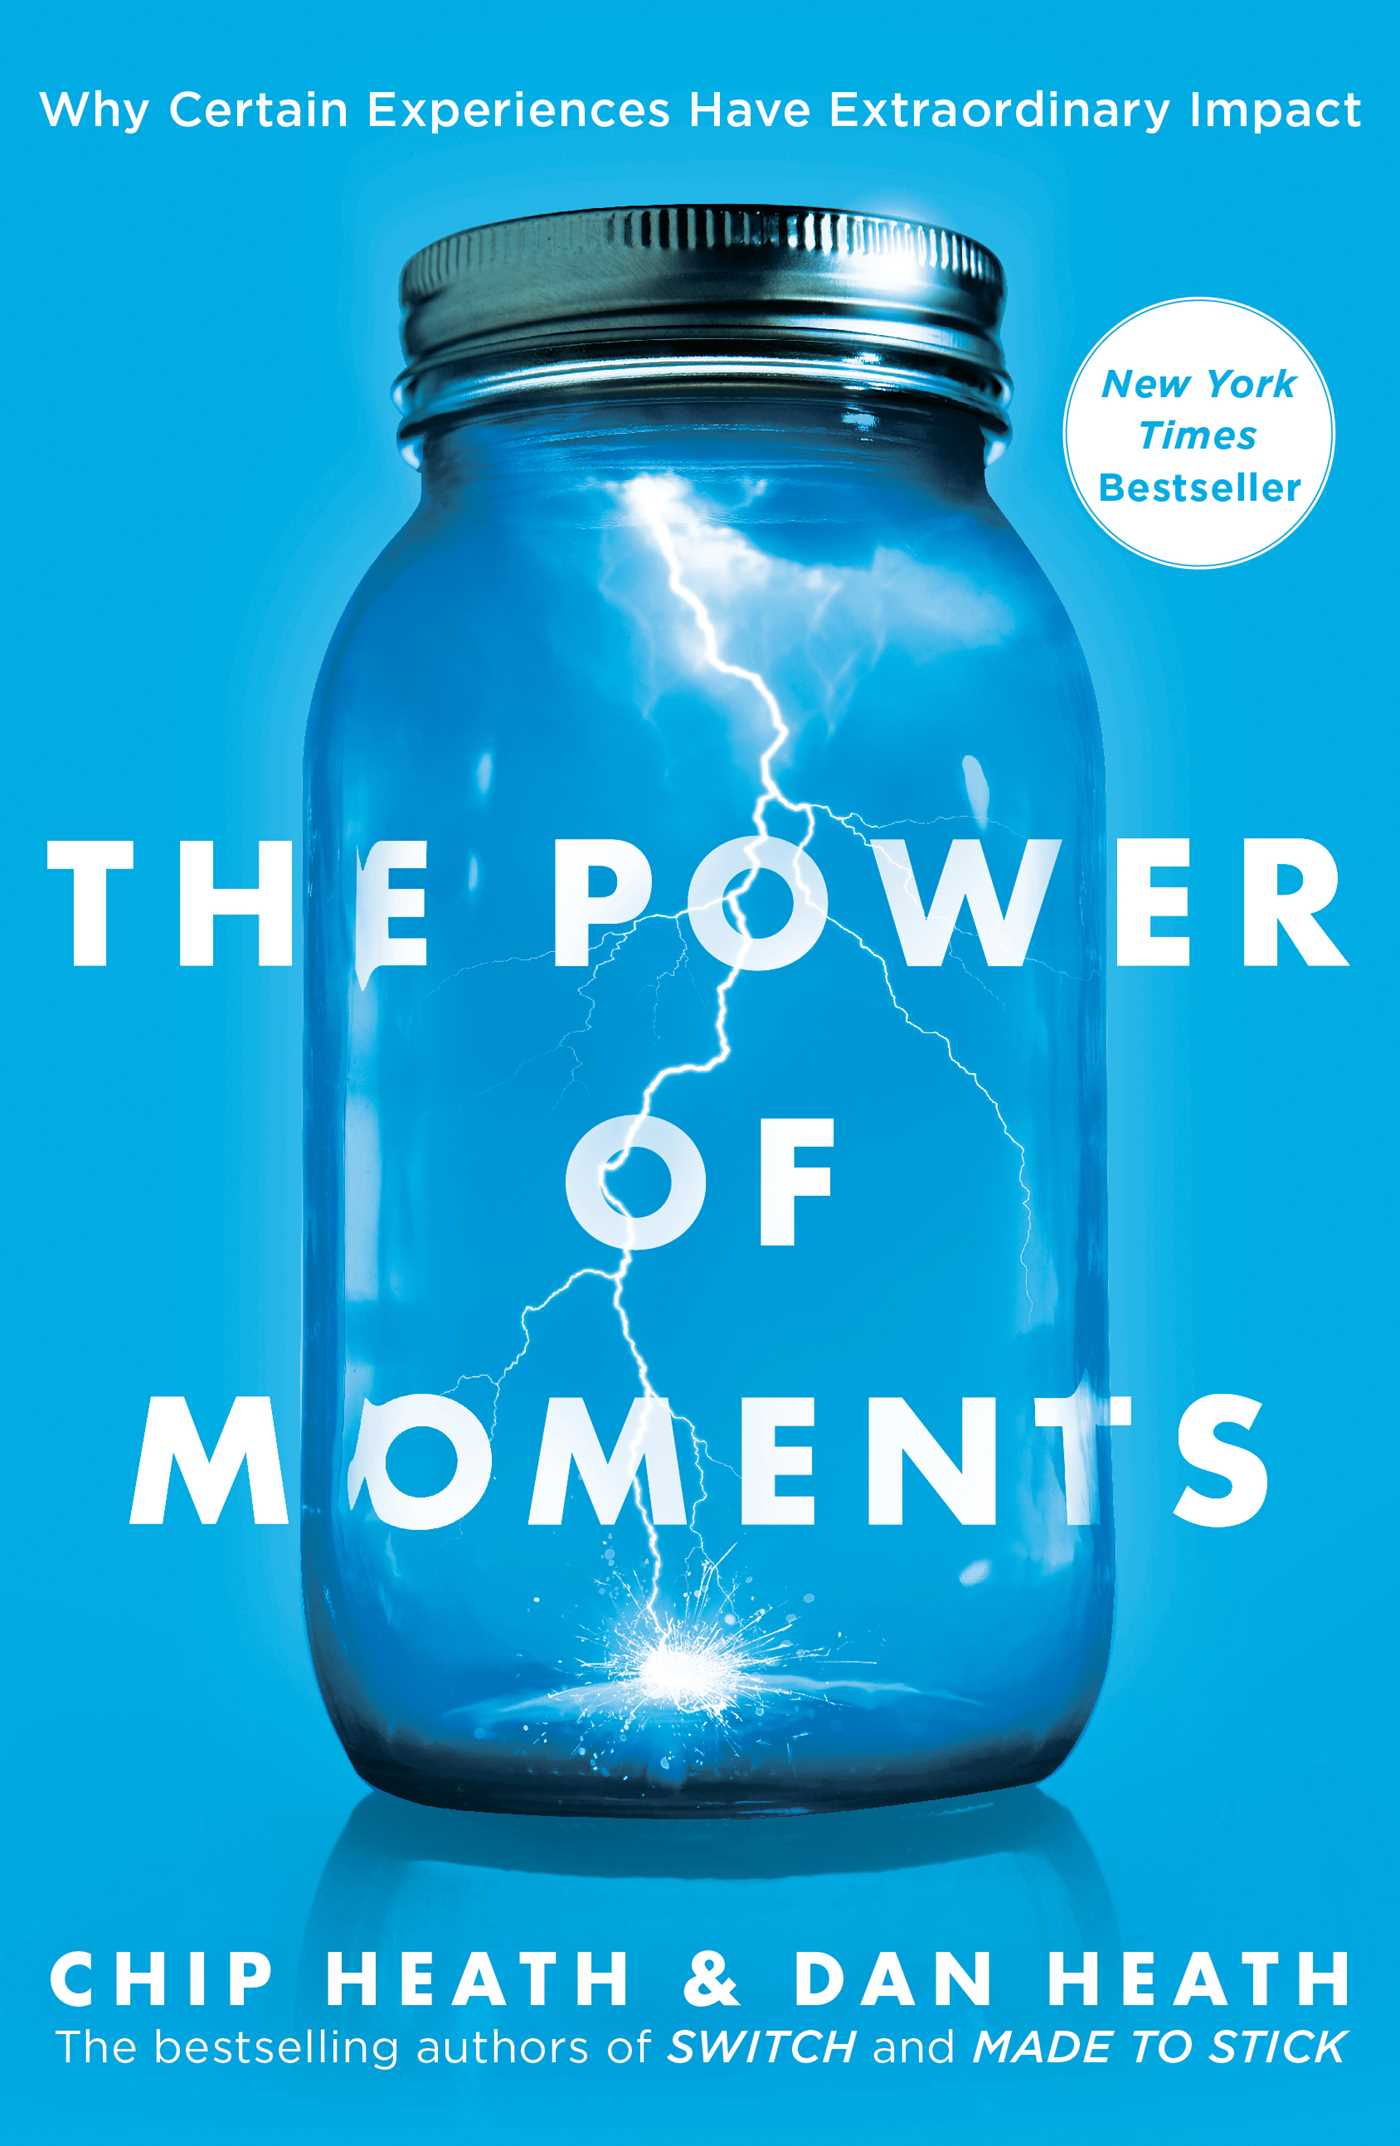 The cover of the book, 'The Power of Moments', showing a lightening strike inside a jar.